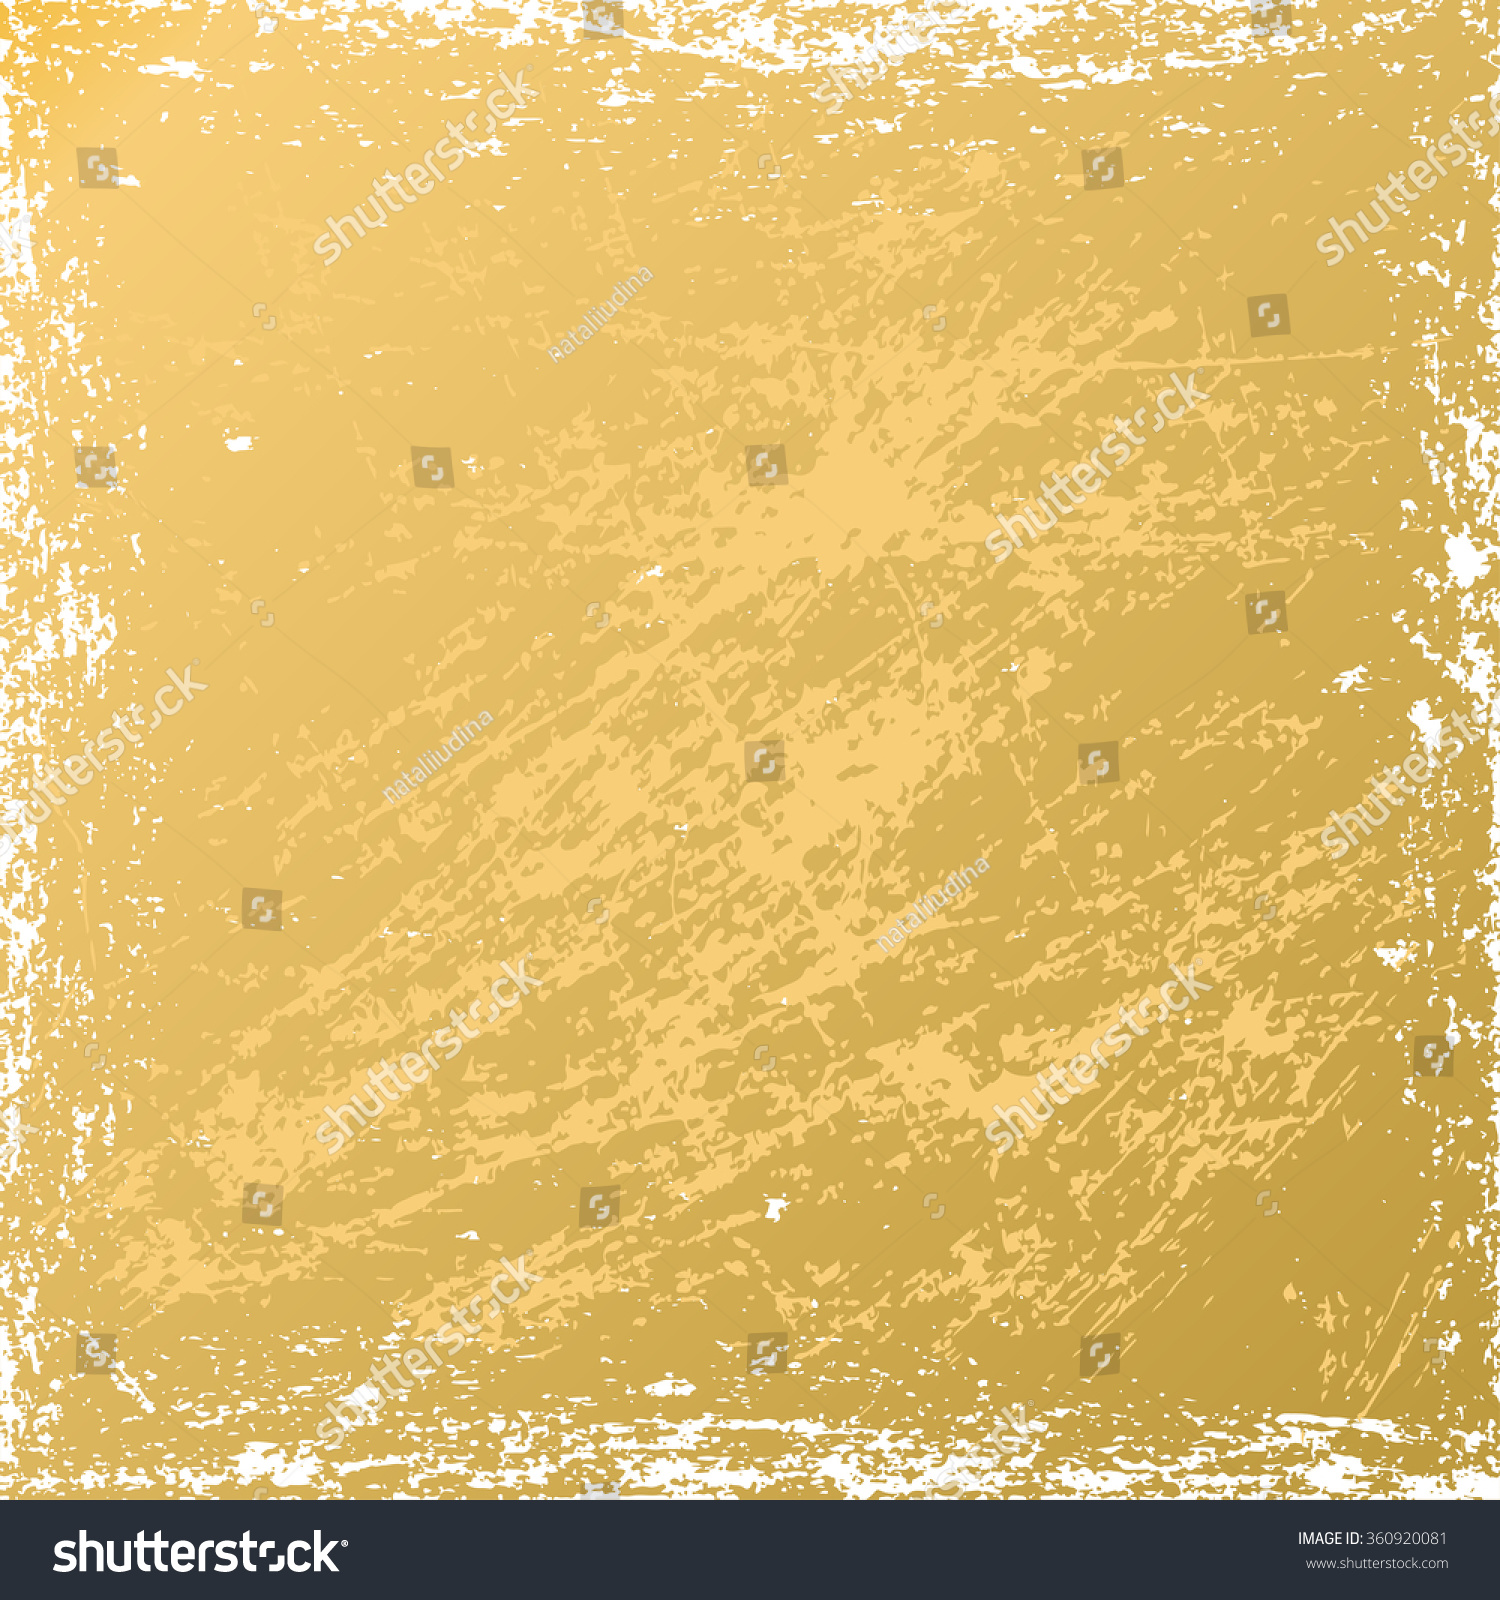 Vector Grunge Texture Scratch Gold Background Stock Vector ...